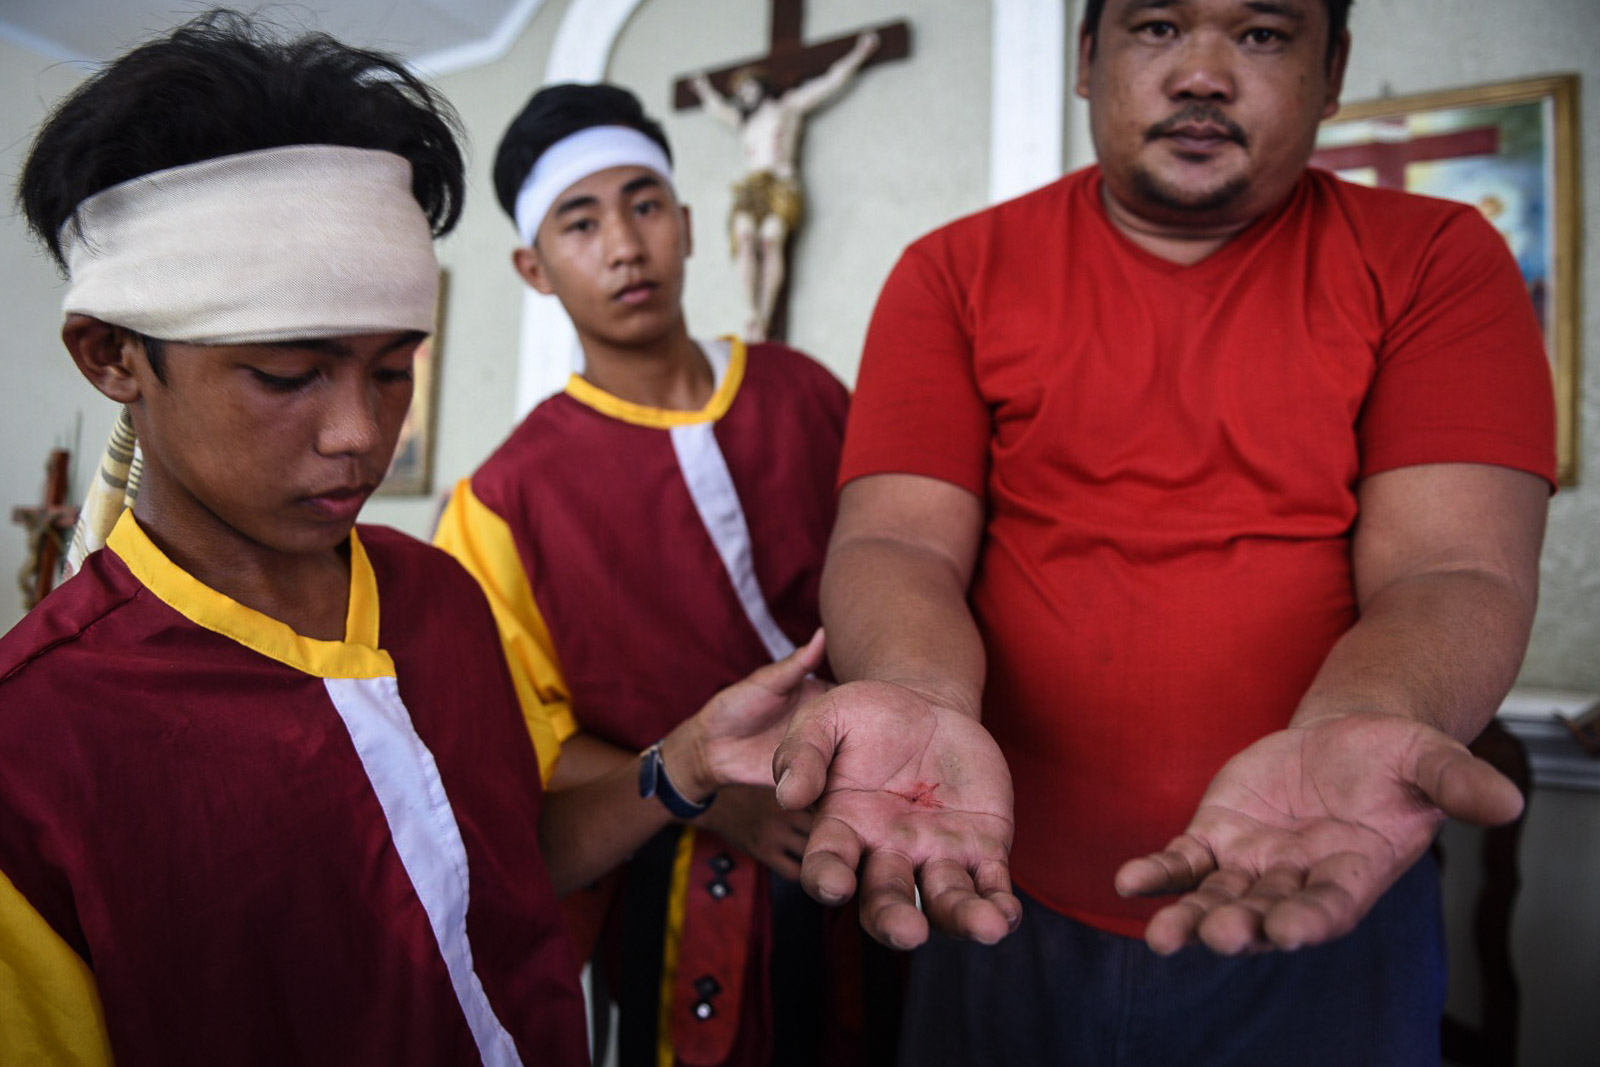 THE WOUND. Marcelino shows his hands to the crowd after the Passion play.